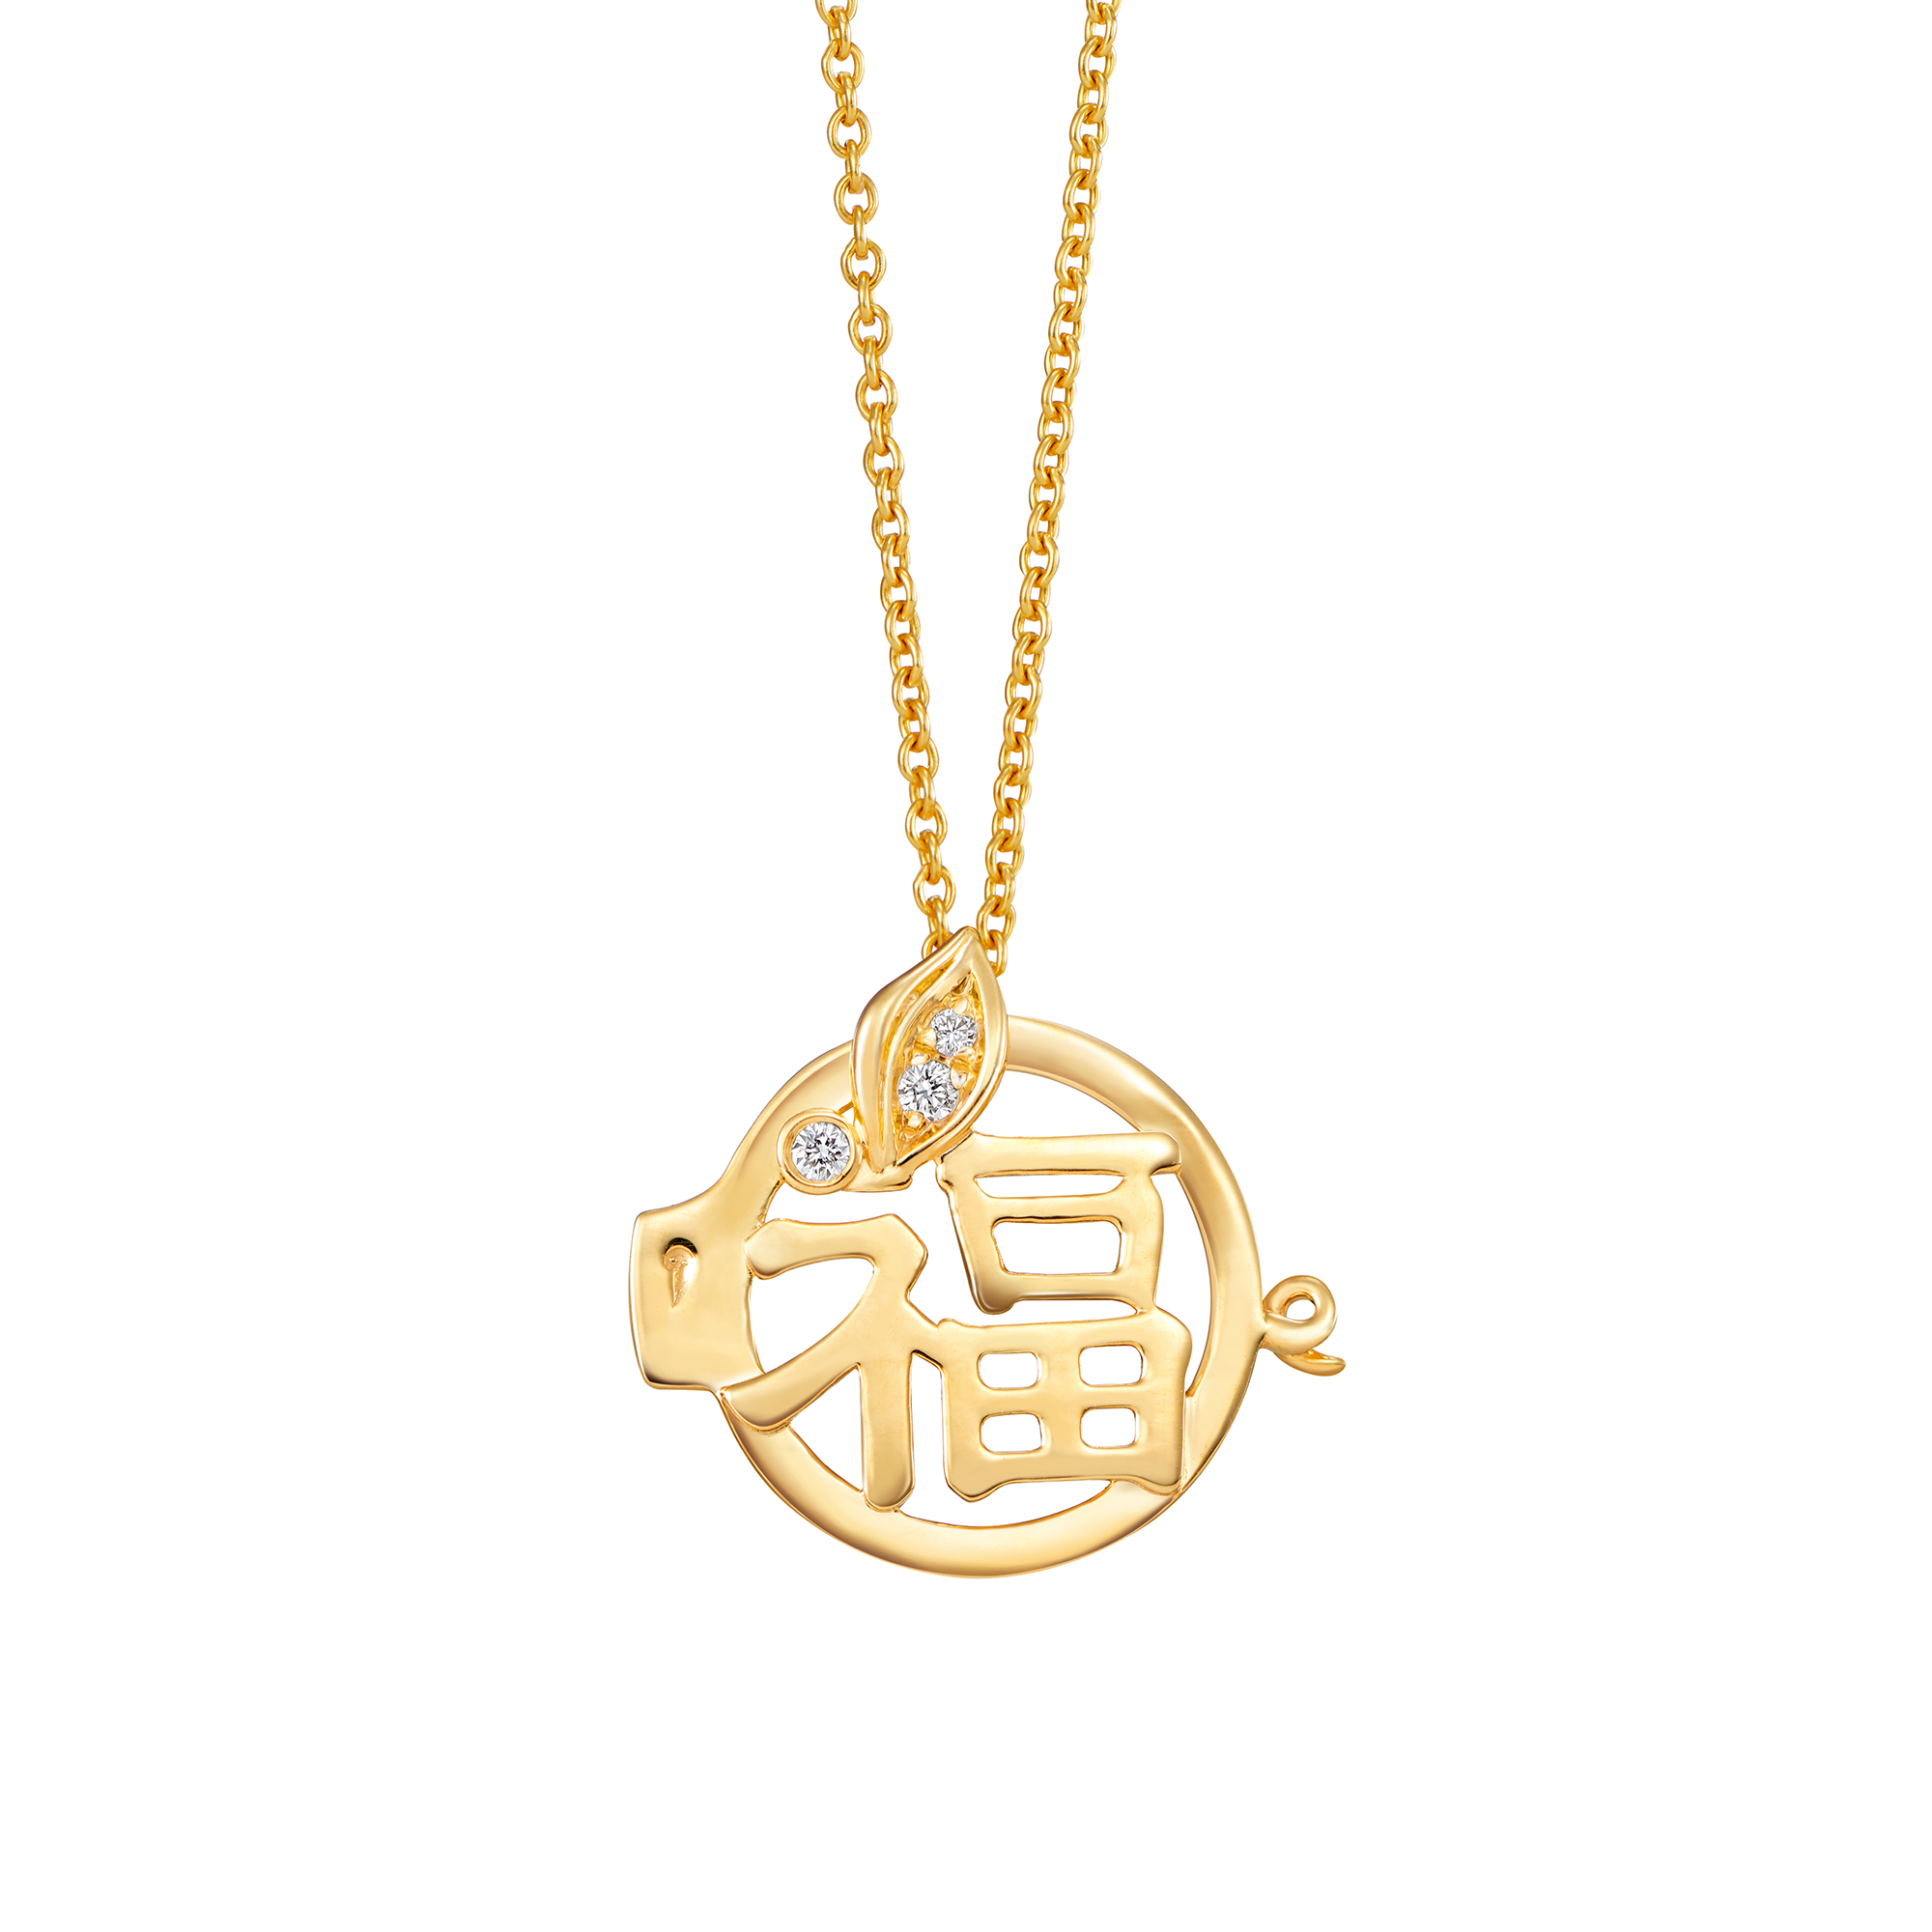 Golden Fuk Sow Diamond Pendant